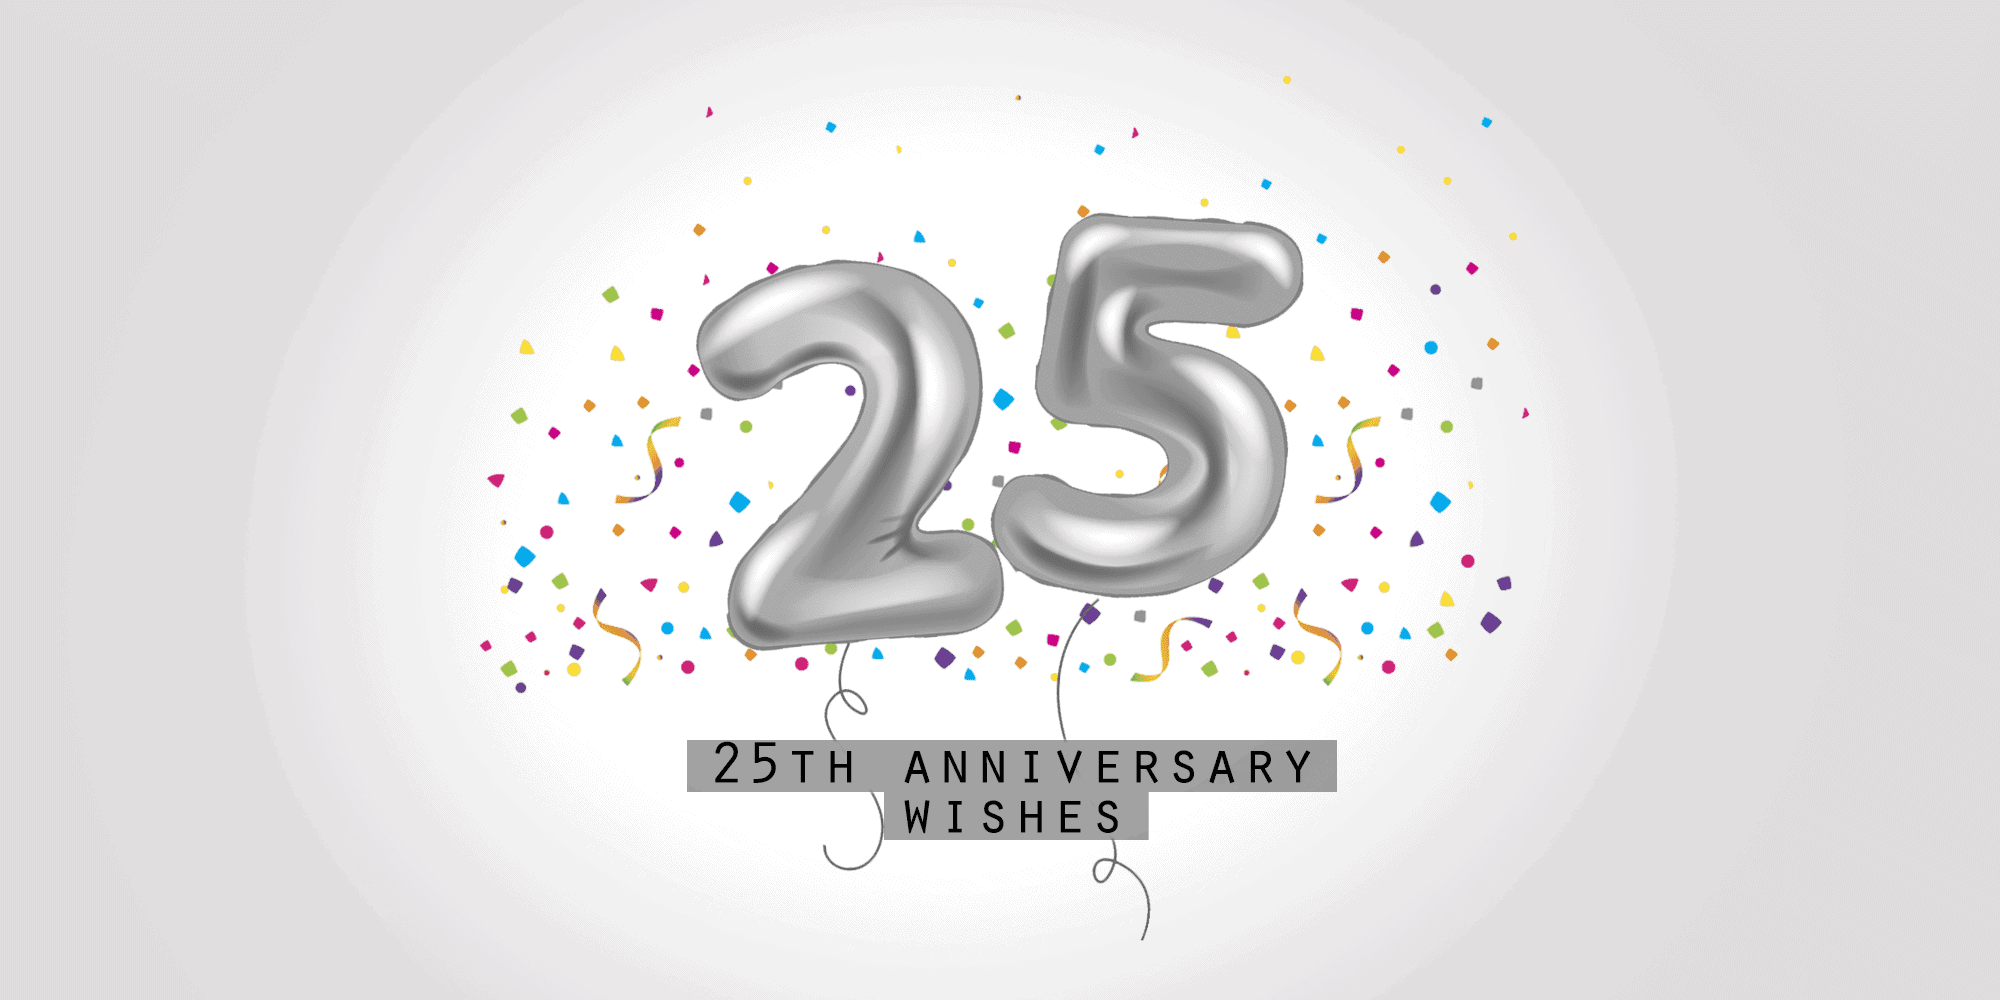 25th Anniversary Quotes and Wishes: 90+ Heartfelt Messages to Celebrate Silver Jubilee Anniversary